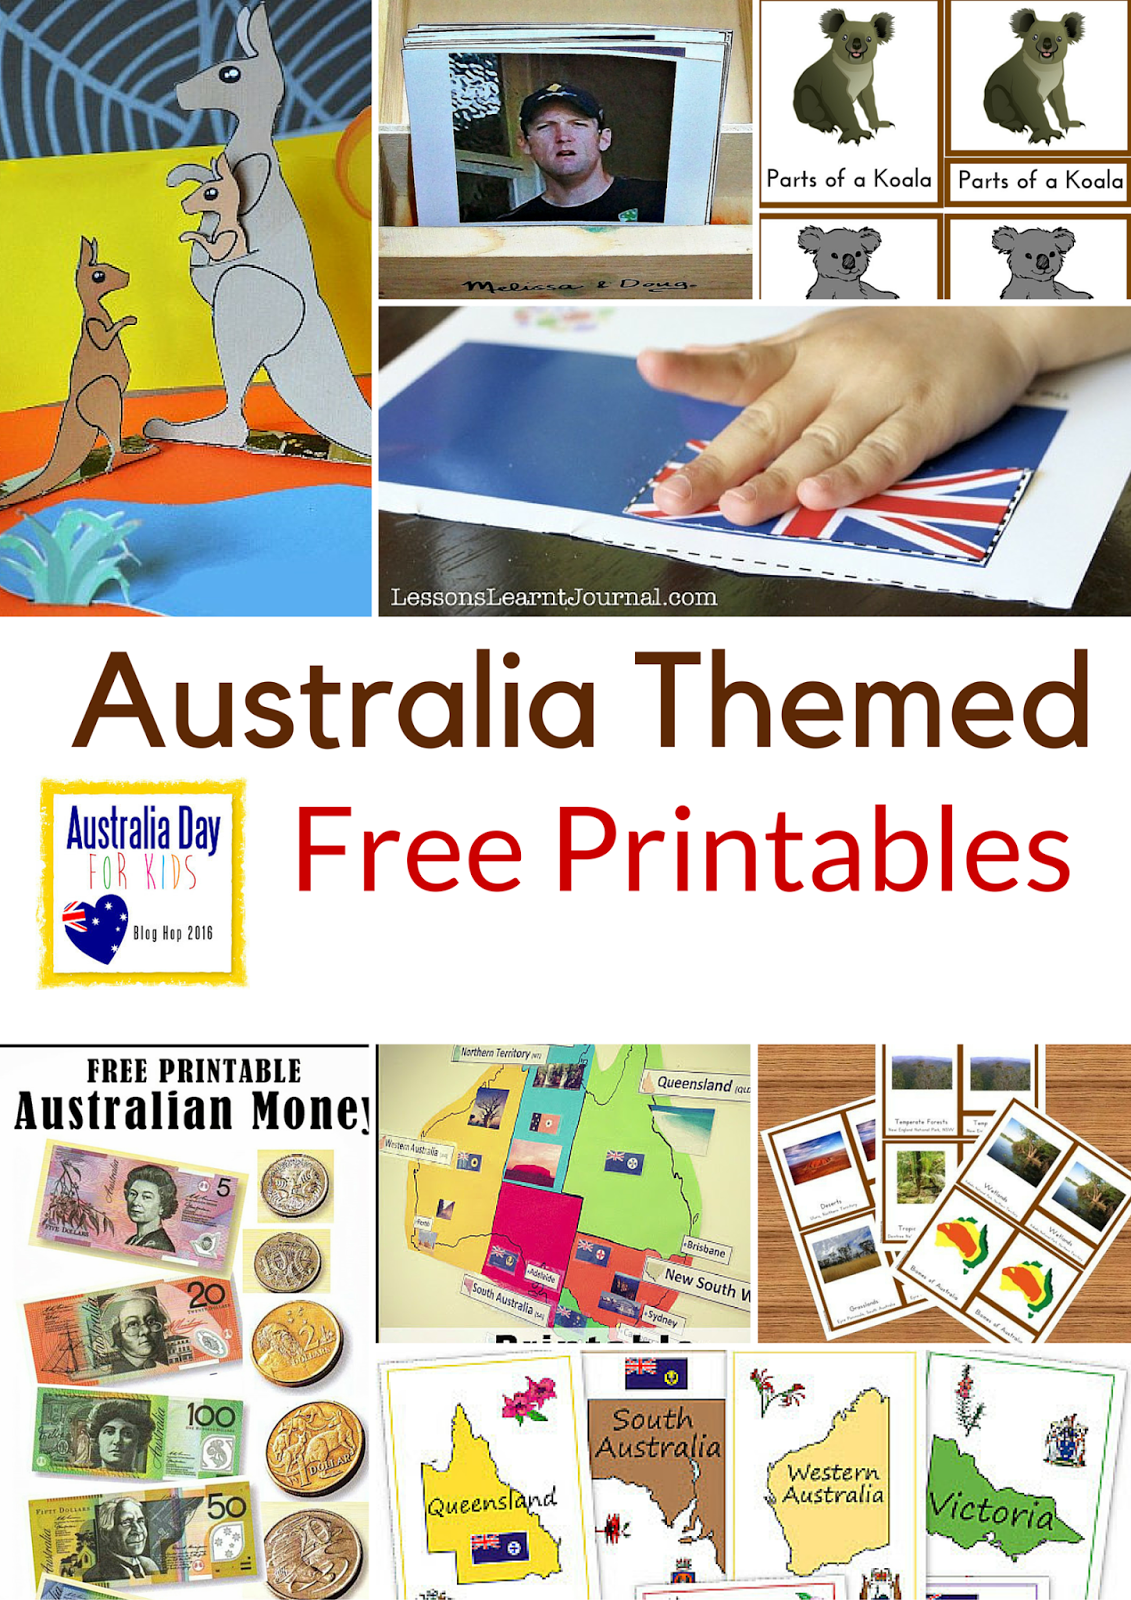 Australia Themed Free Printables